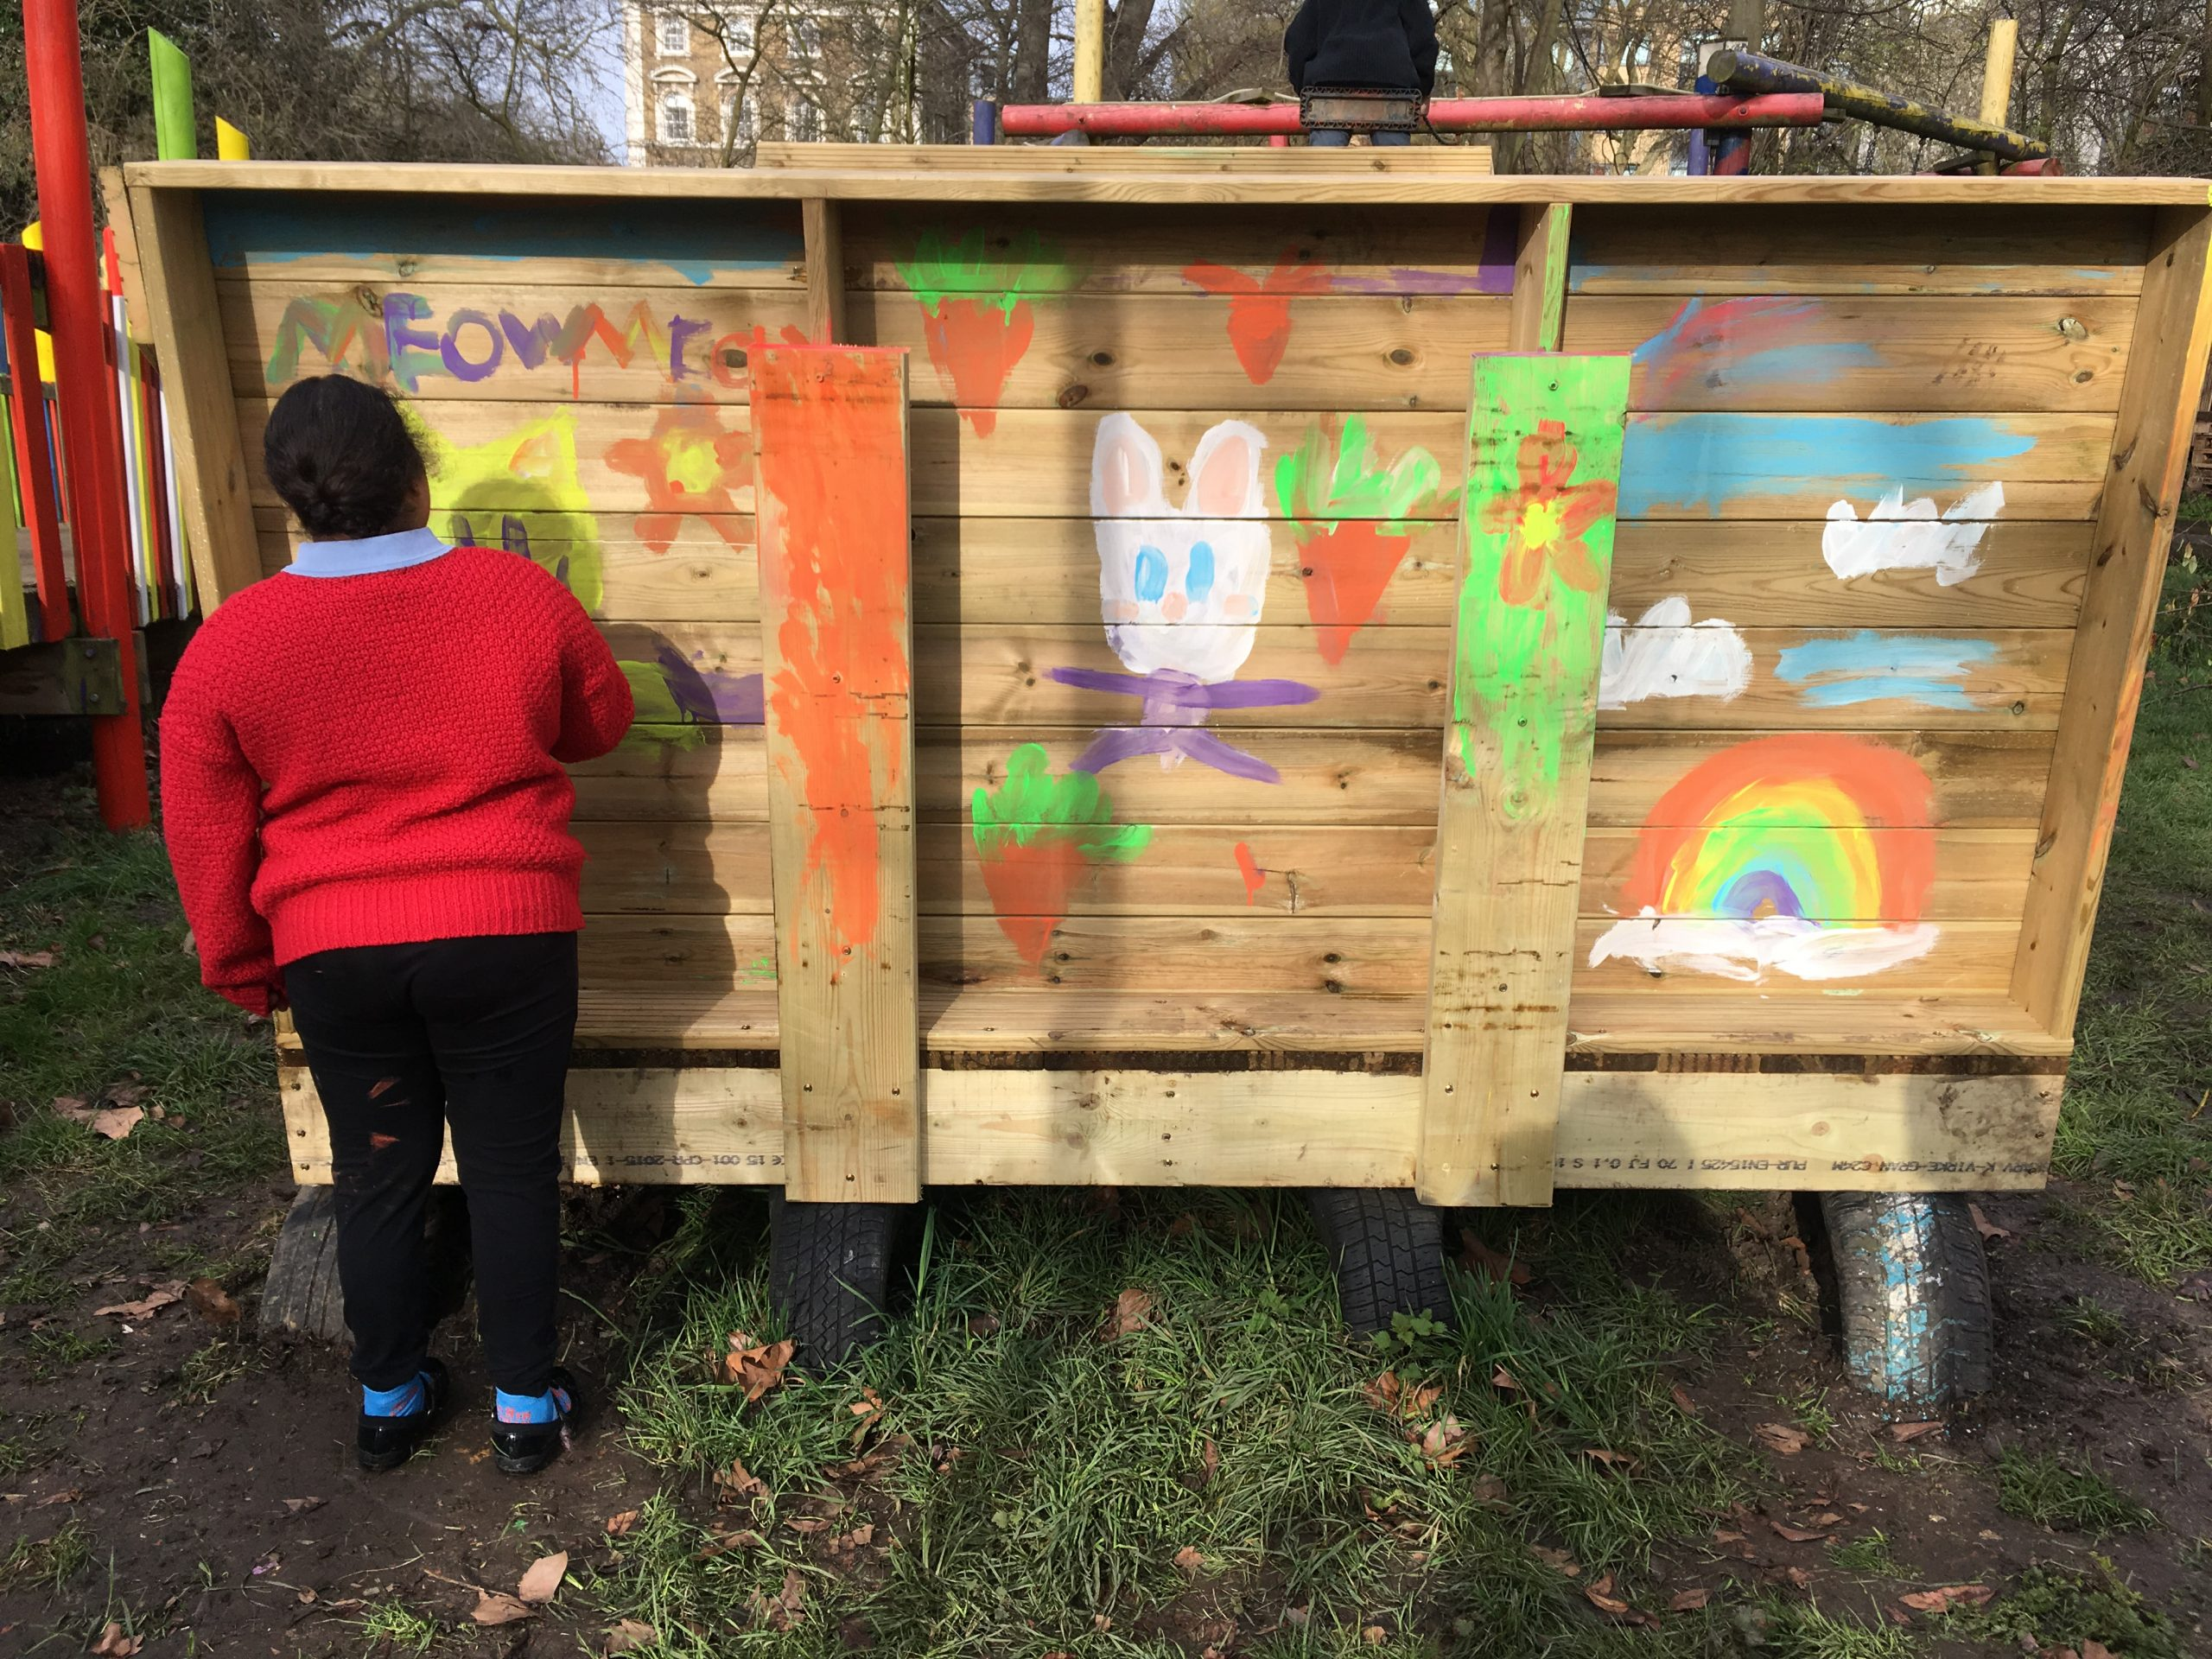 KIDS organisation uses Leader Award Grant to build own Seesaw